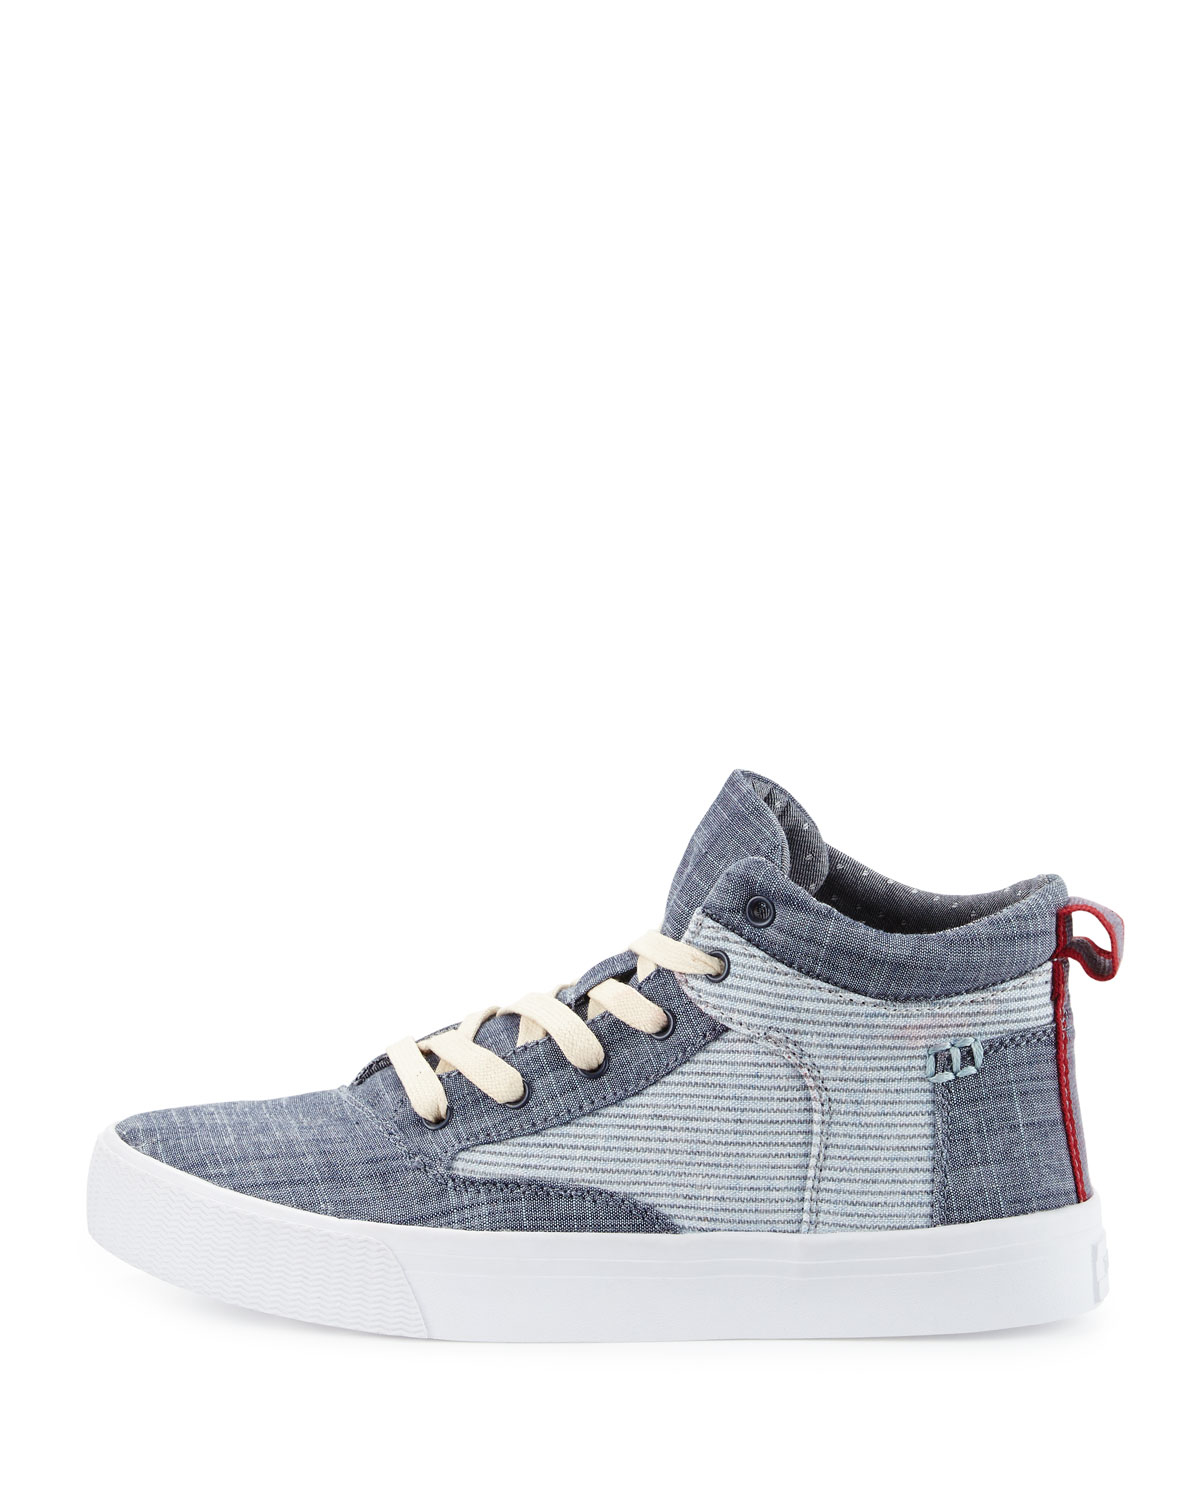 Find your adidas Men - High Tops at arifvisitor.ga All styles and colors available in the official adidas online store.